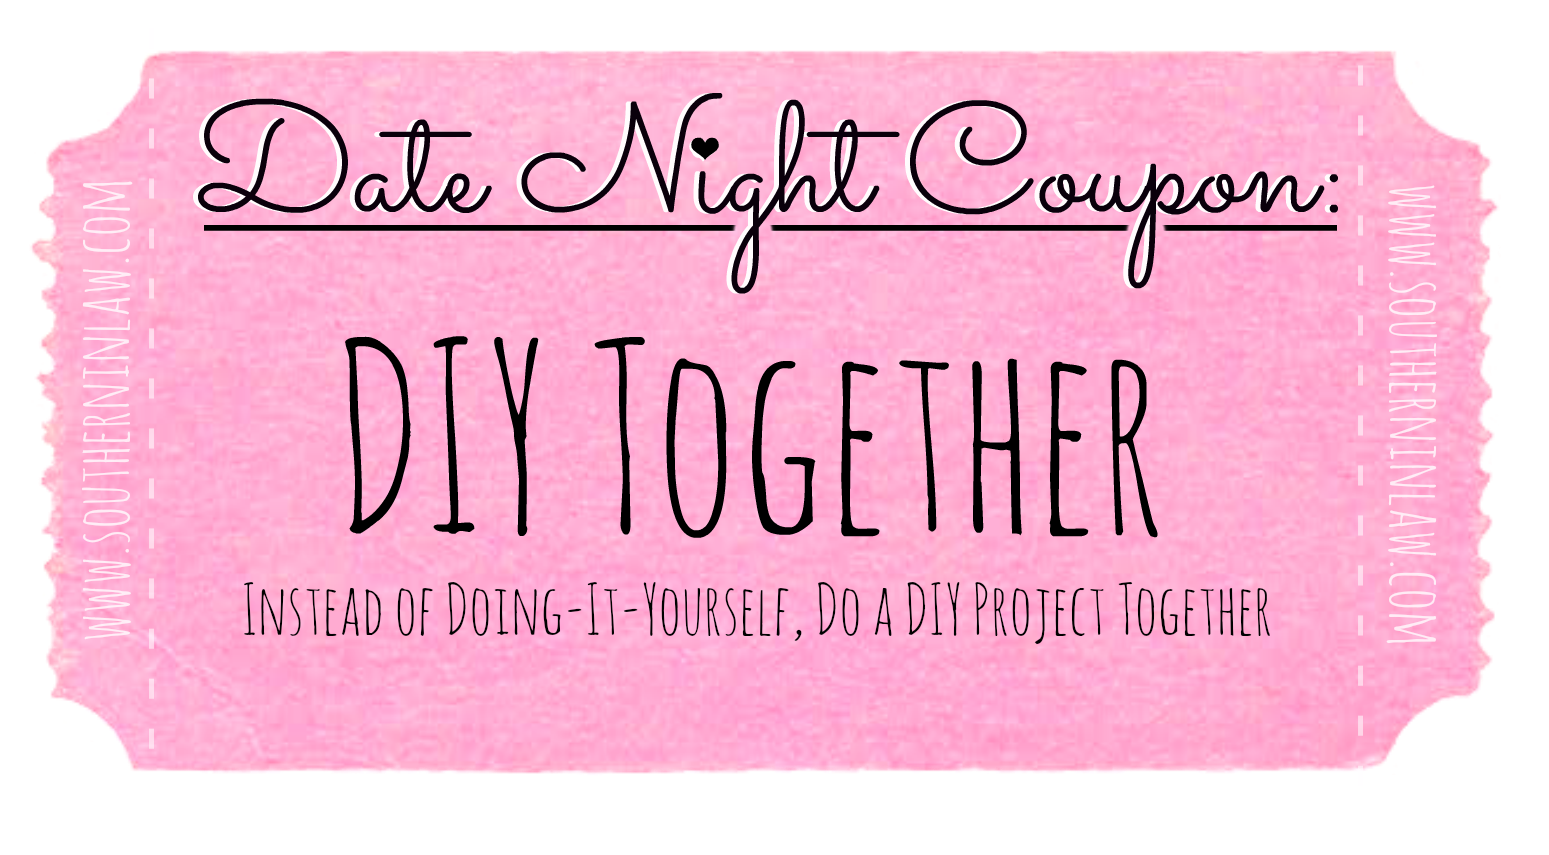 Cheap Date Ideas - Date Night Coupons - Do a DIY Project Together